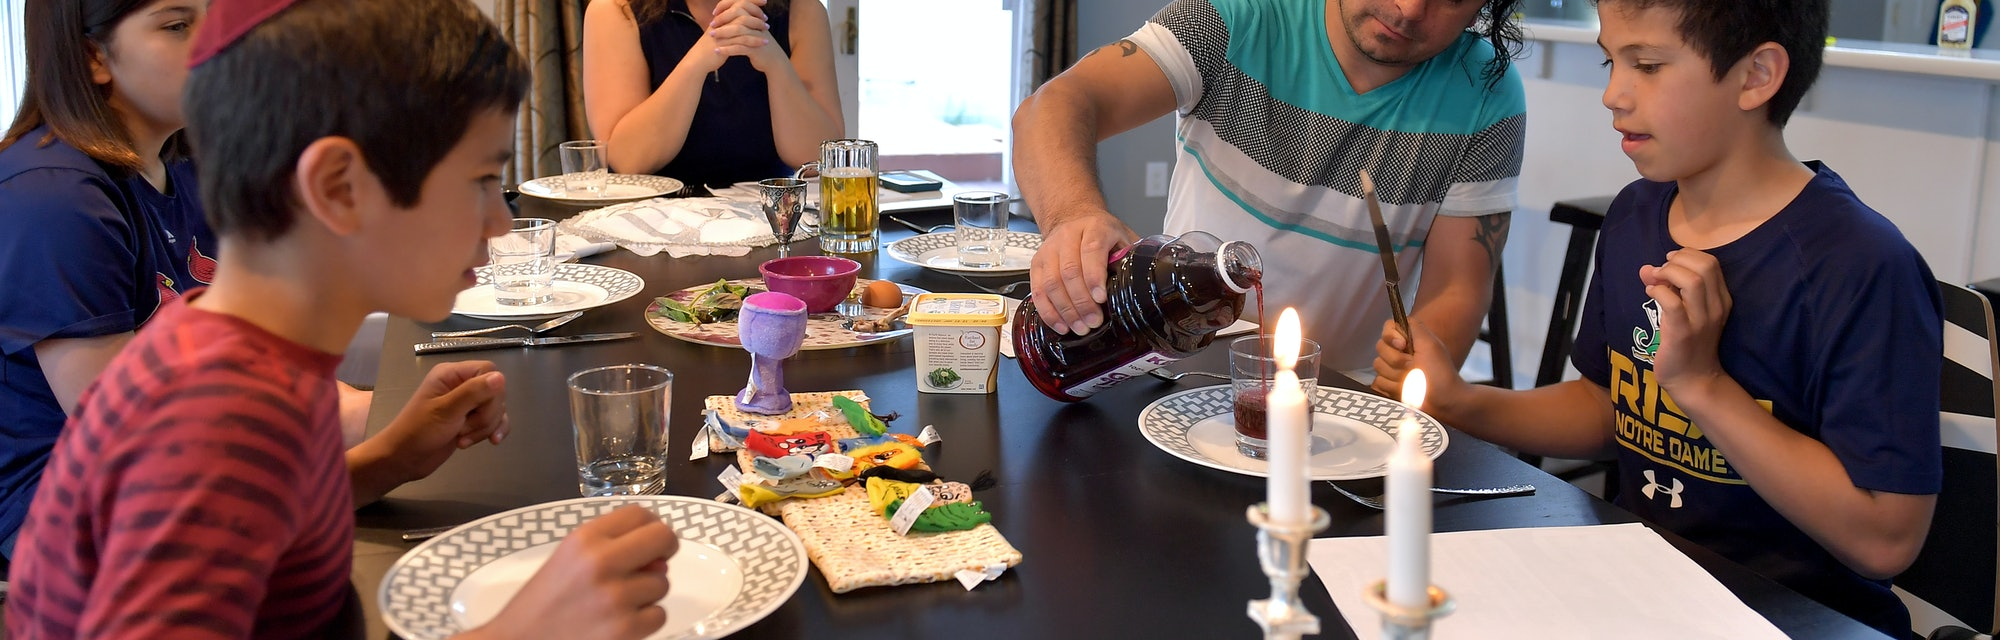 CLARK, NEW JERSEY - APRIL 08: (L-R) Jeremy Valencia, Daniel Valencia, Jennifer Valencia, Jhon Valencia and Eric Valencia celebrate Passover at home on April 08, 2020 in Clark, New Jersey. Passover began at sundown and ends Thursday evening, April 16.  (Photo by Michael Loccisano/Getty Images)